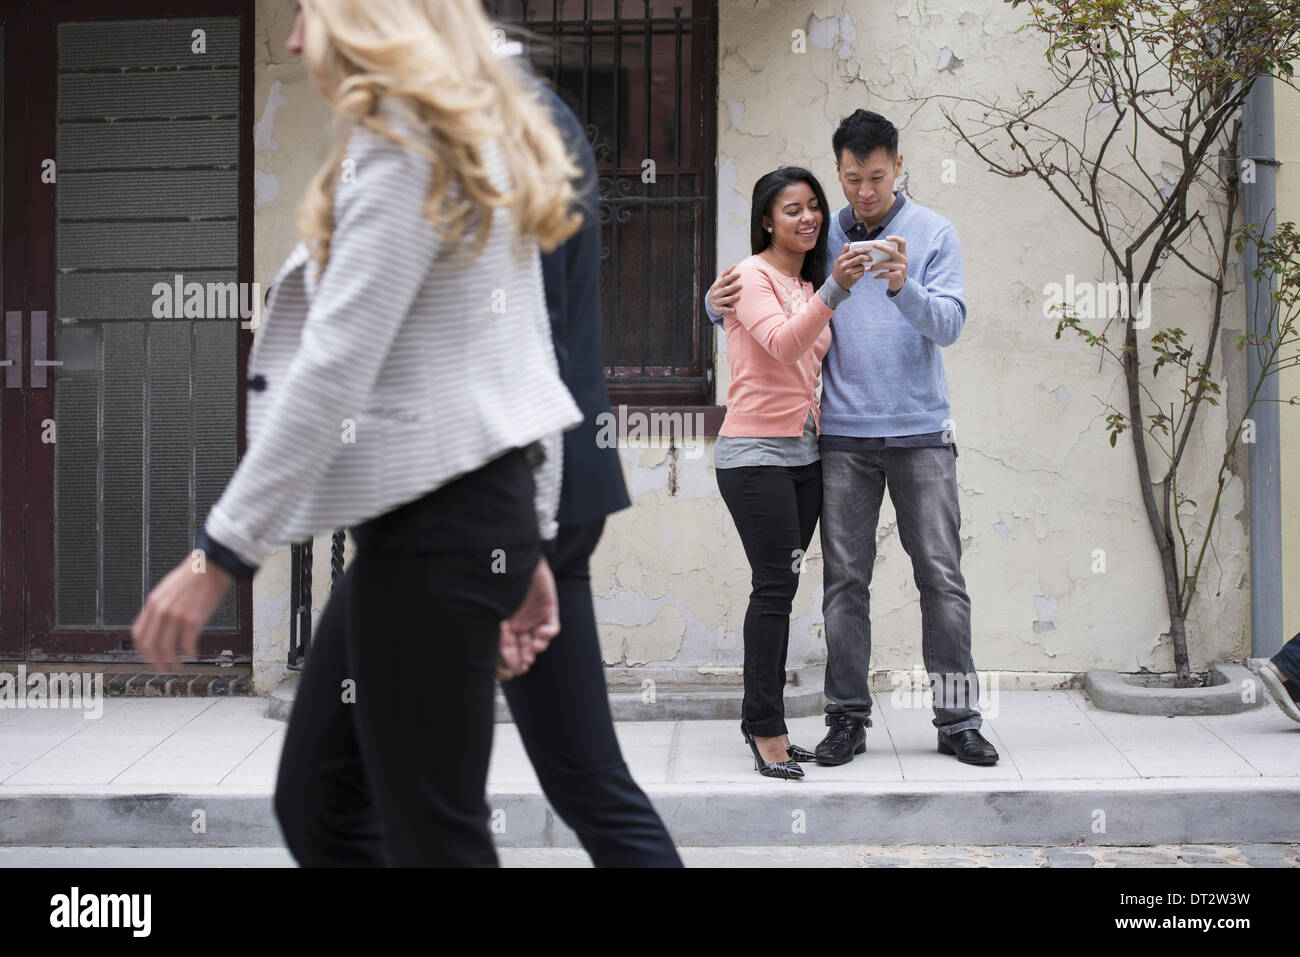 Young people streets in springtime A couple taking images of themselves using a smart phone Two people walking by - Stock Image